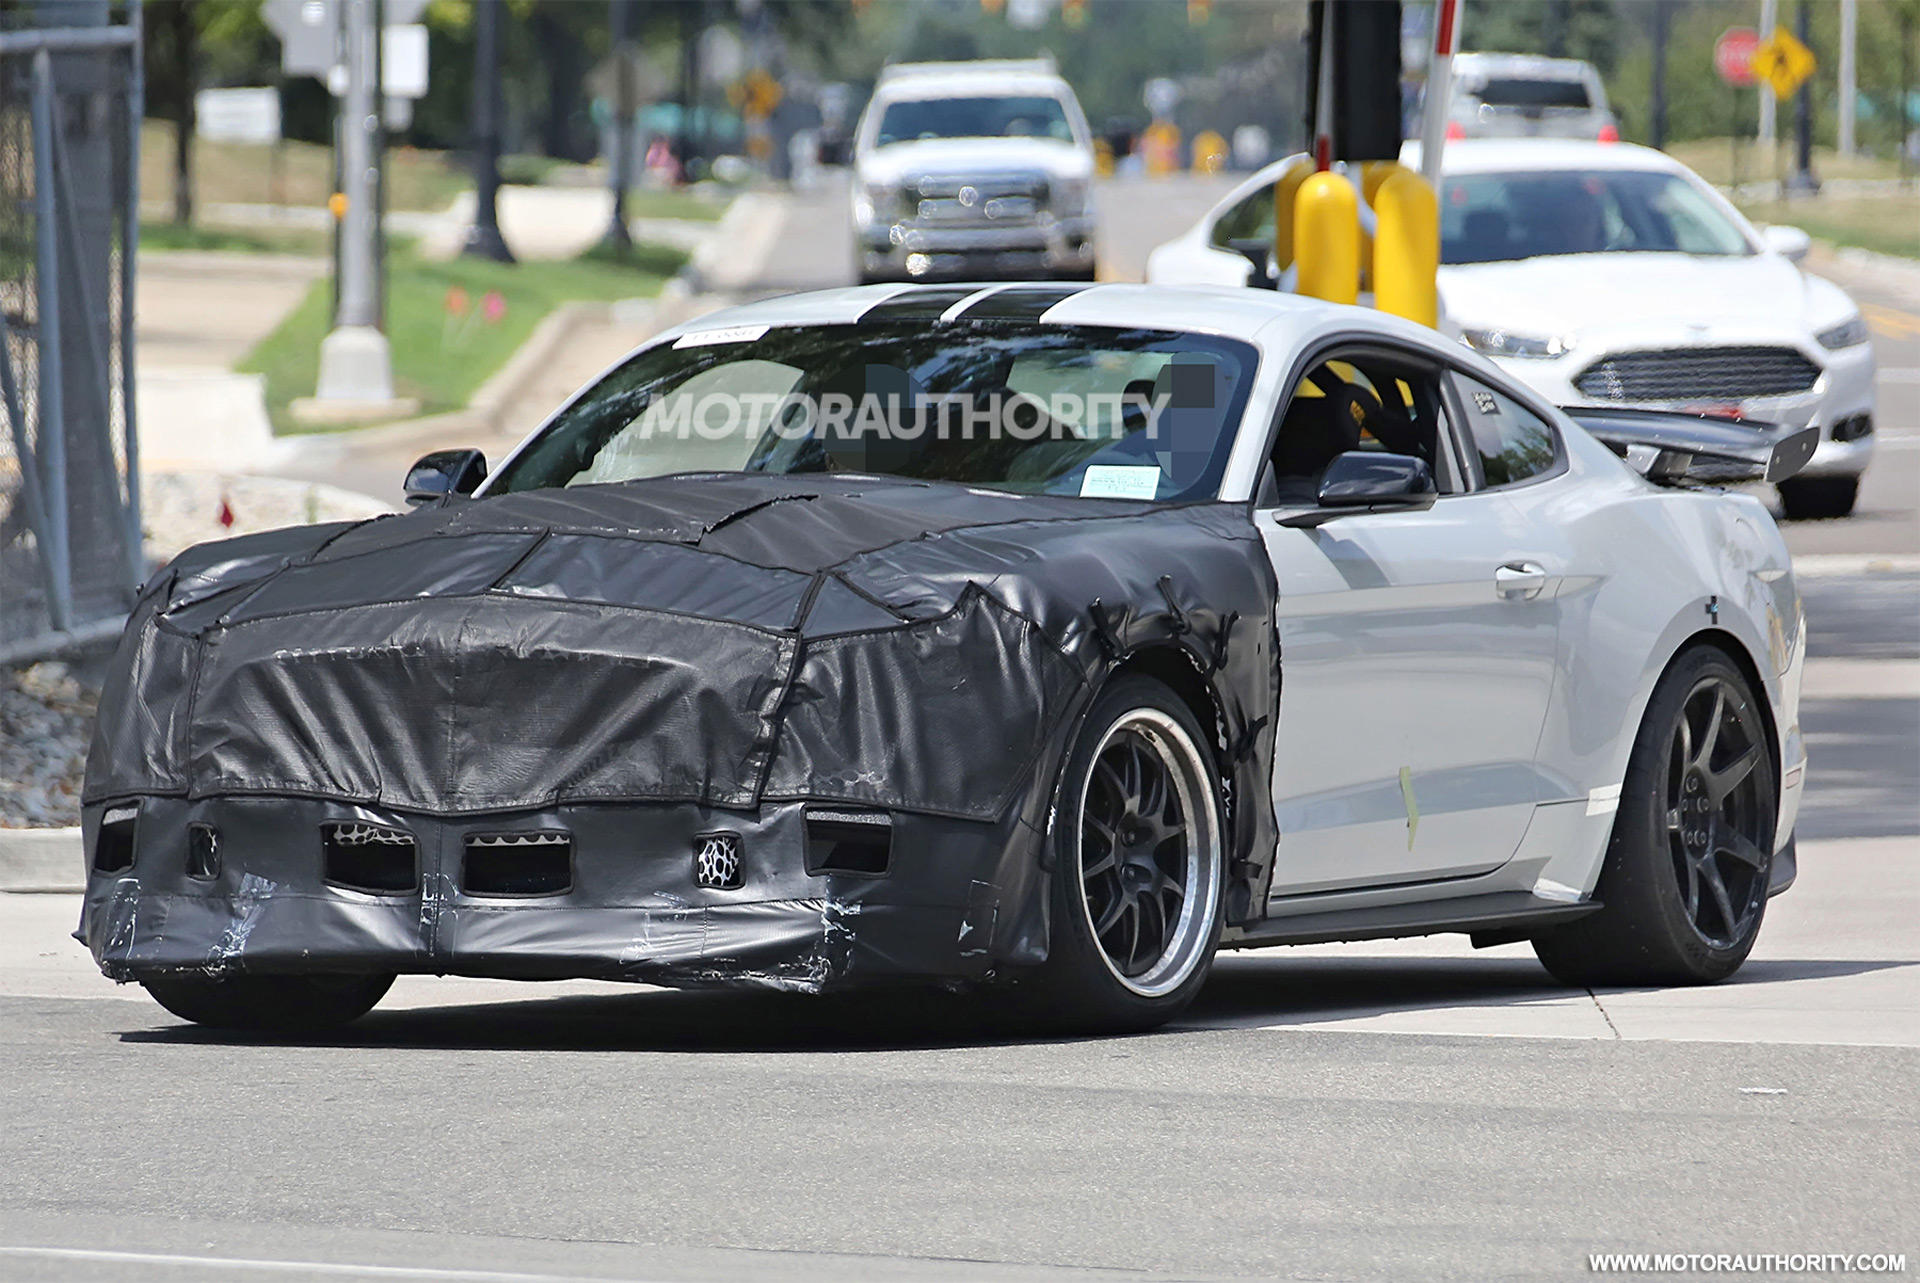 Ford Mustang Concept 2017 >> 2018 Ford Mustang Shelby GT500 spy shots and video